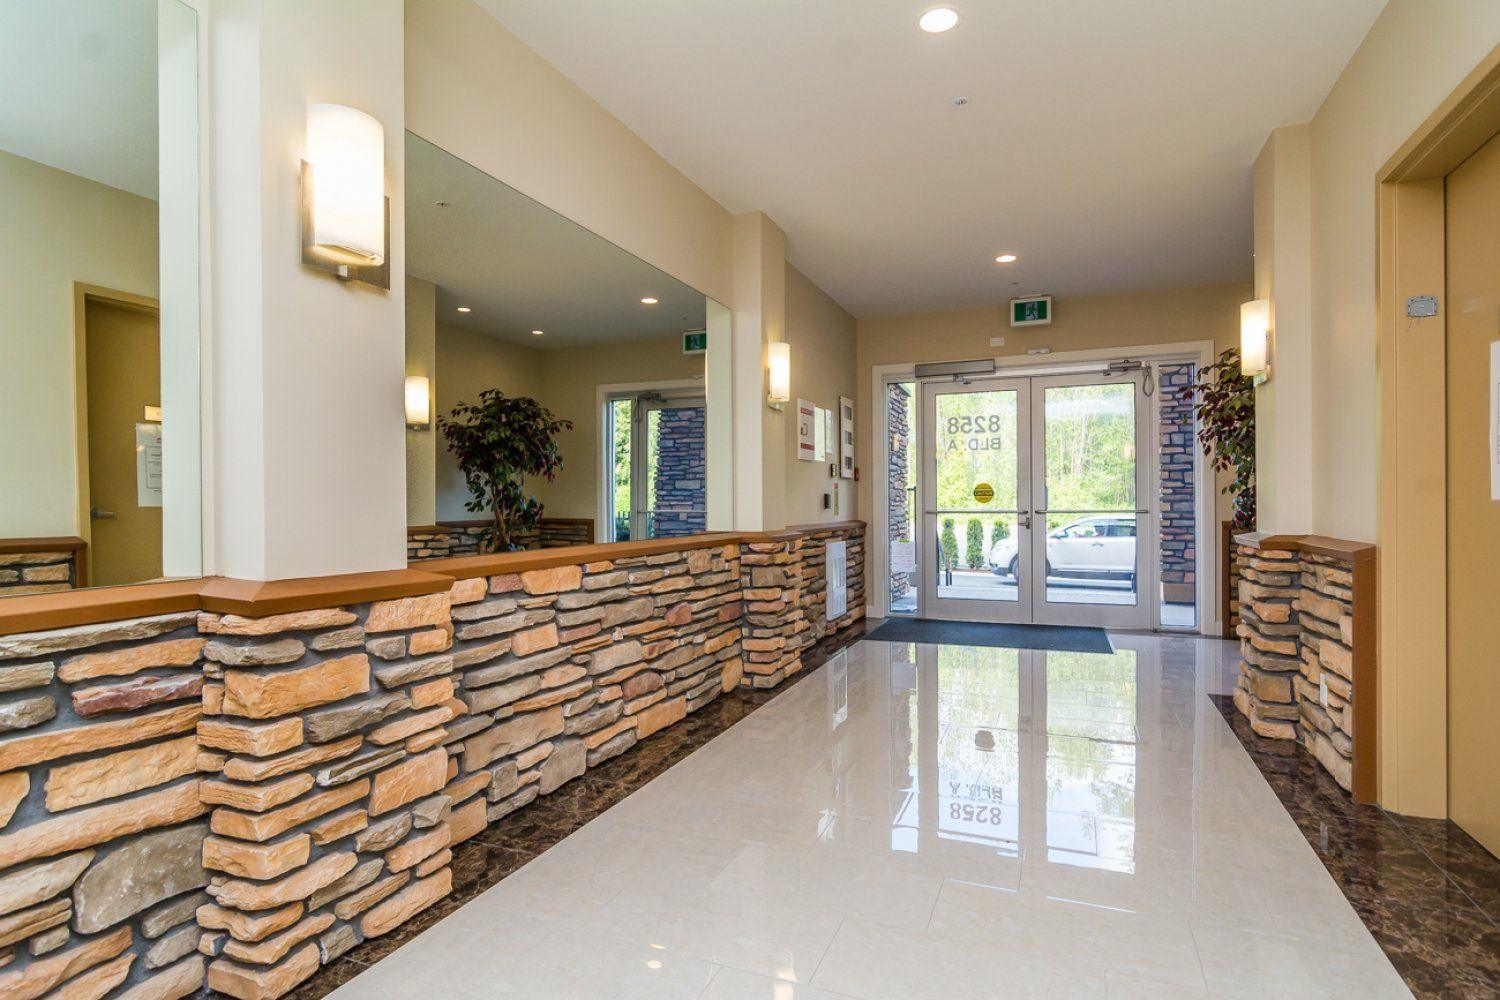 """Photo 5: Photos: 509 8258 207A Street in Langley: Willoughby Heights Condo for sale in """"YORKSON CREEK (BLG A)"""" : MLS®# R2221052"""